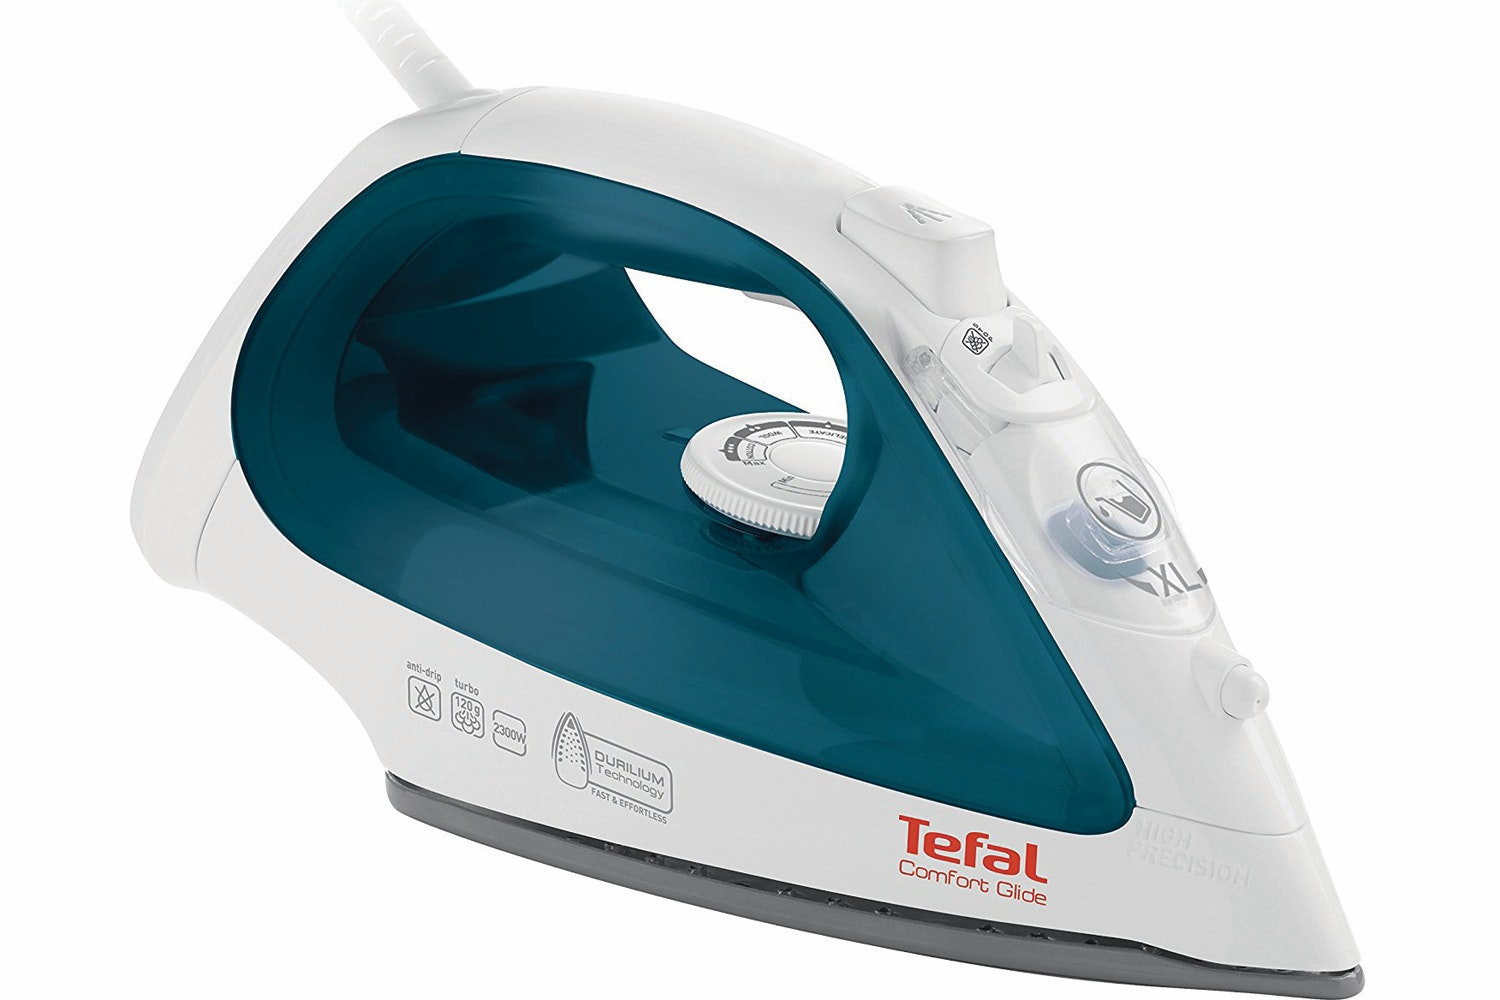 Tefal 2300W Comfort Glide Steam Iron | FV2650G0